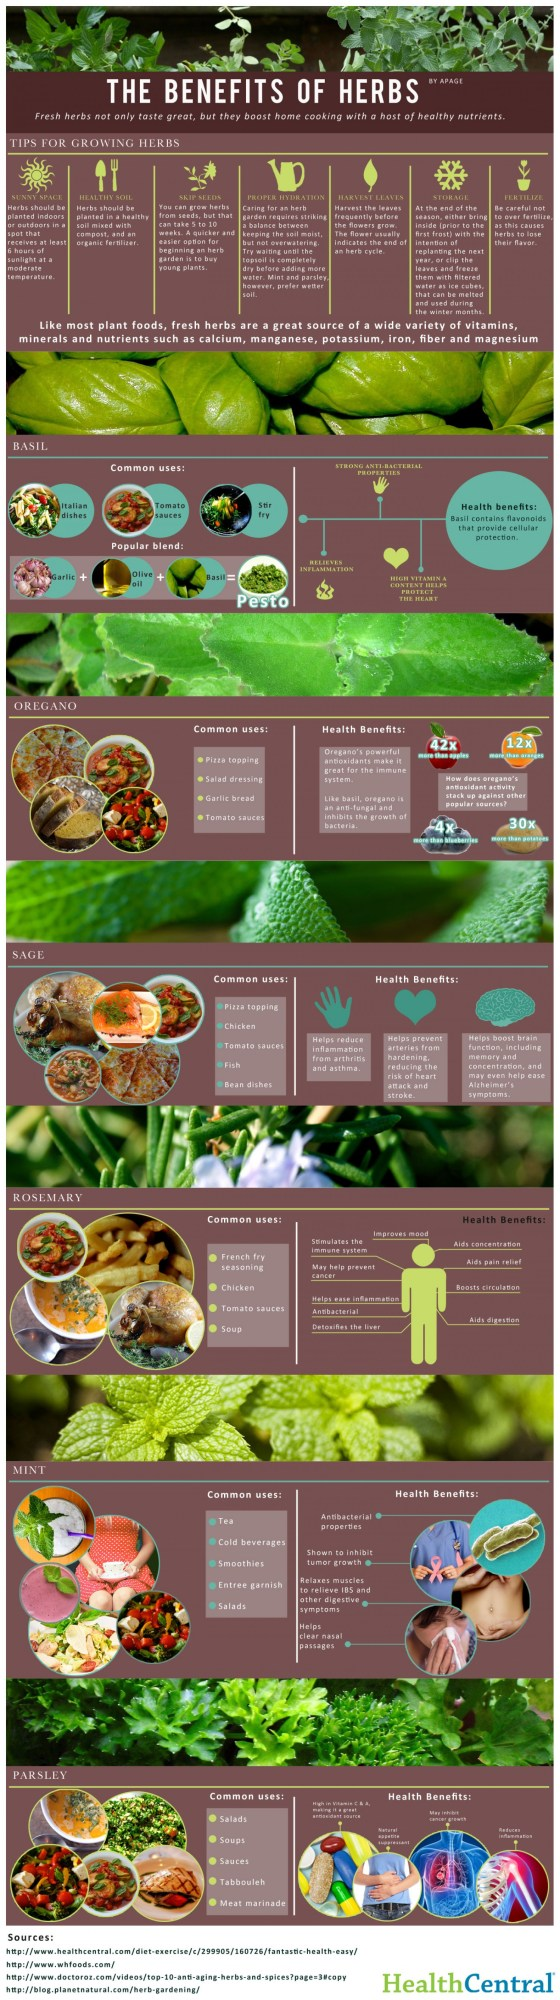 Photo credit: http://visual.ly/benefits-herbs